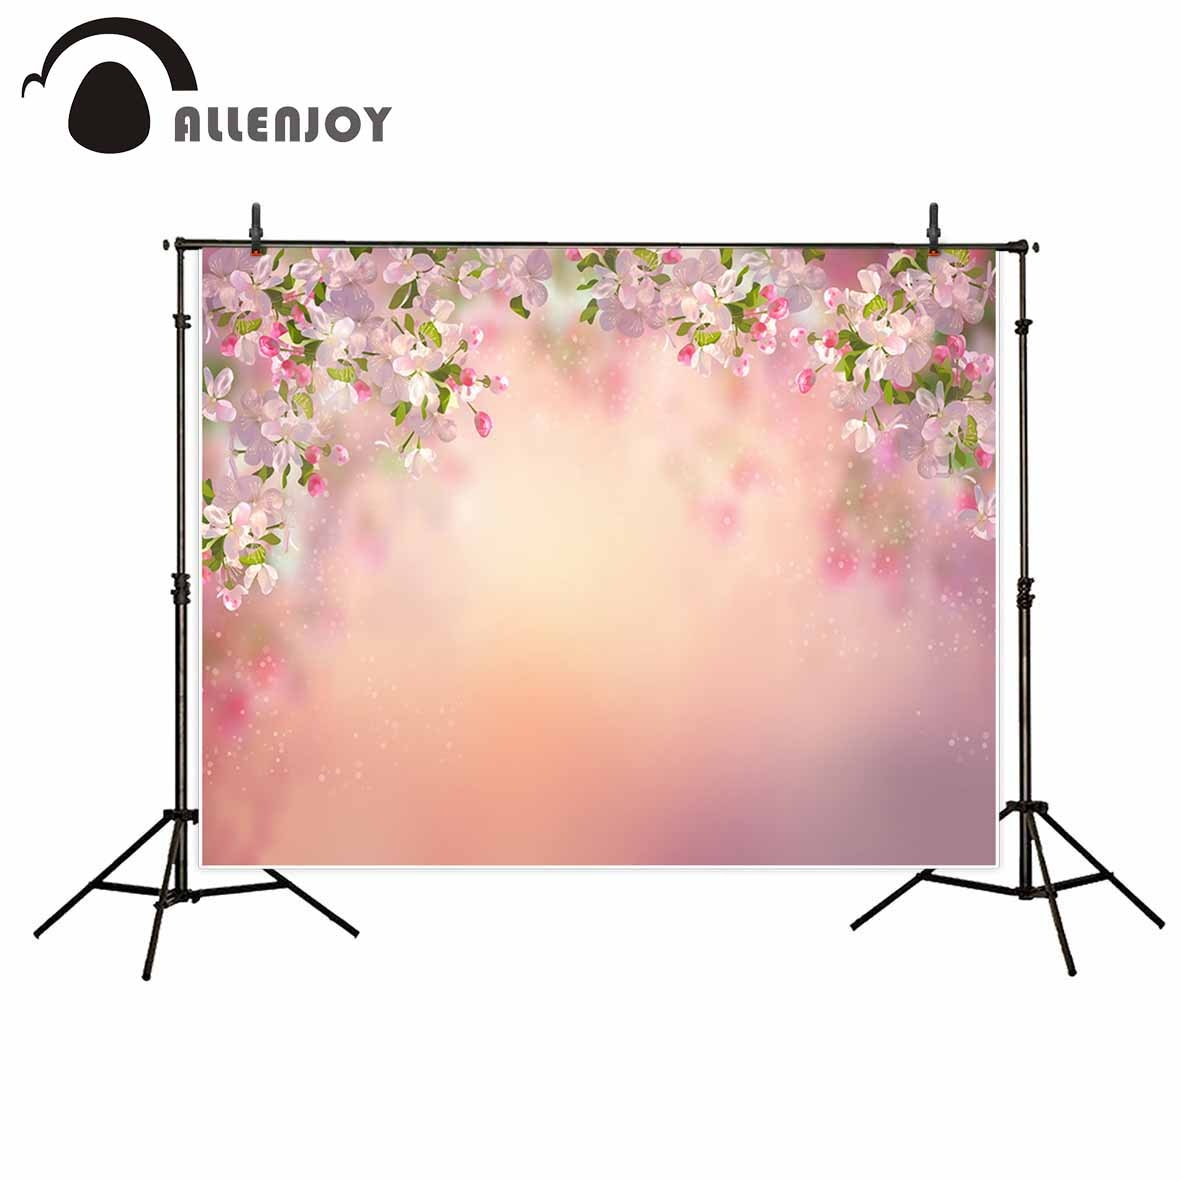 Allenjoy photography backdrops Pink flowers spring wedding mariage Valentine's Day photographic background photocall photophone allenjoy photography backdrops background stage dancers pink green bokeh watercolor baby shower newborn props spring princess